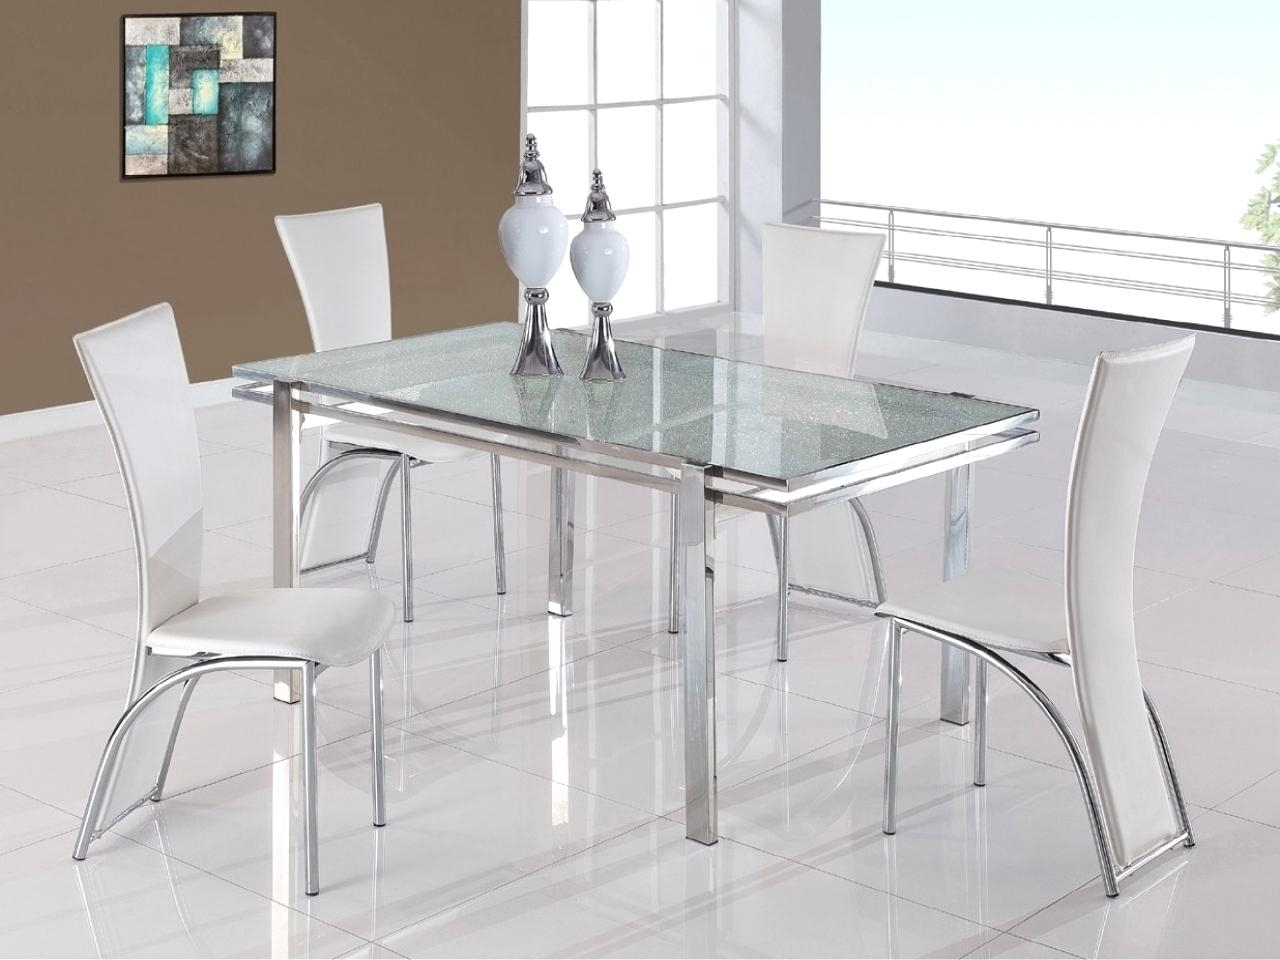 Most Recent White Glass Dining Tables And Chairs Regarding Outstanding Dining Room Sets White Glass Lass Dining Table Set Price (View 4 of 25)